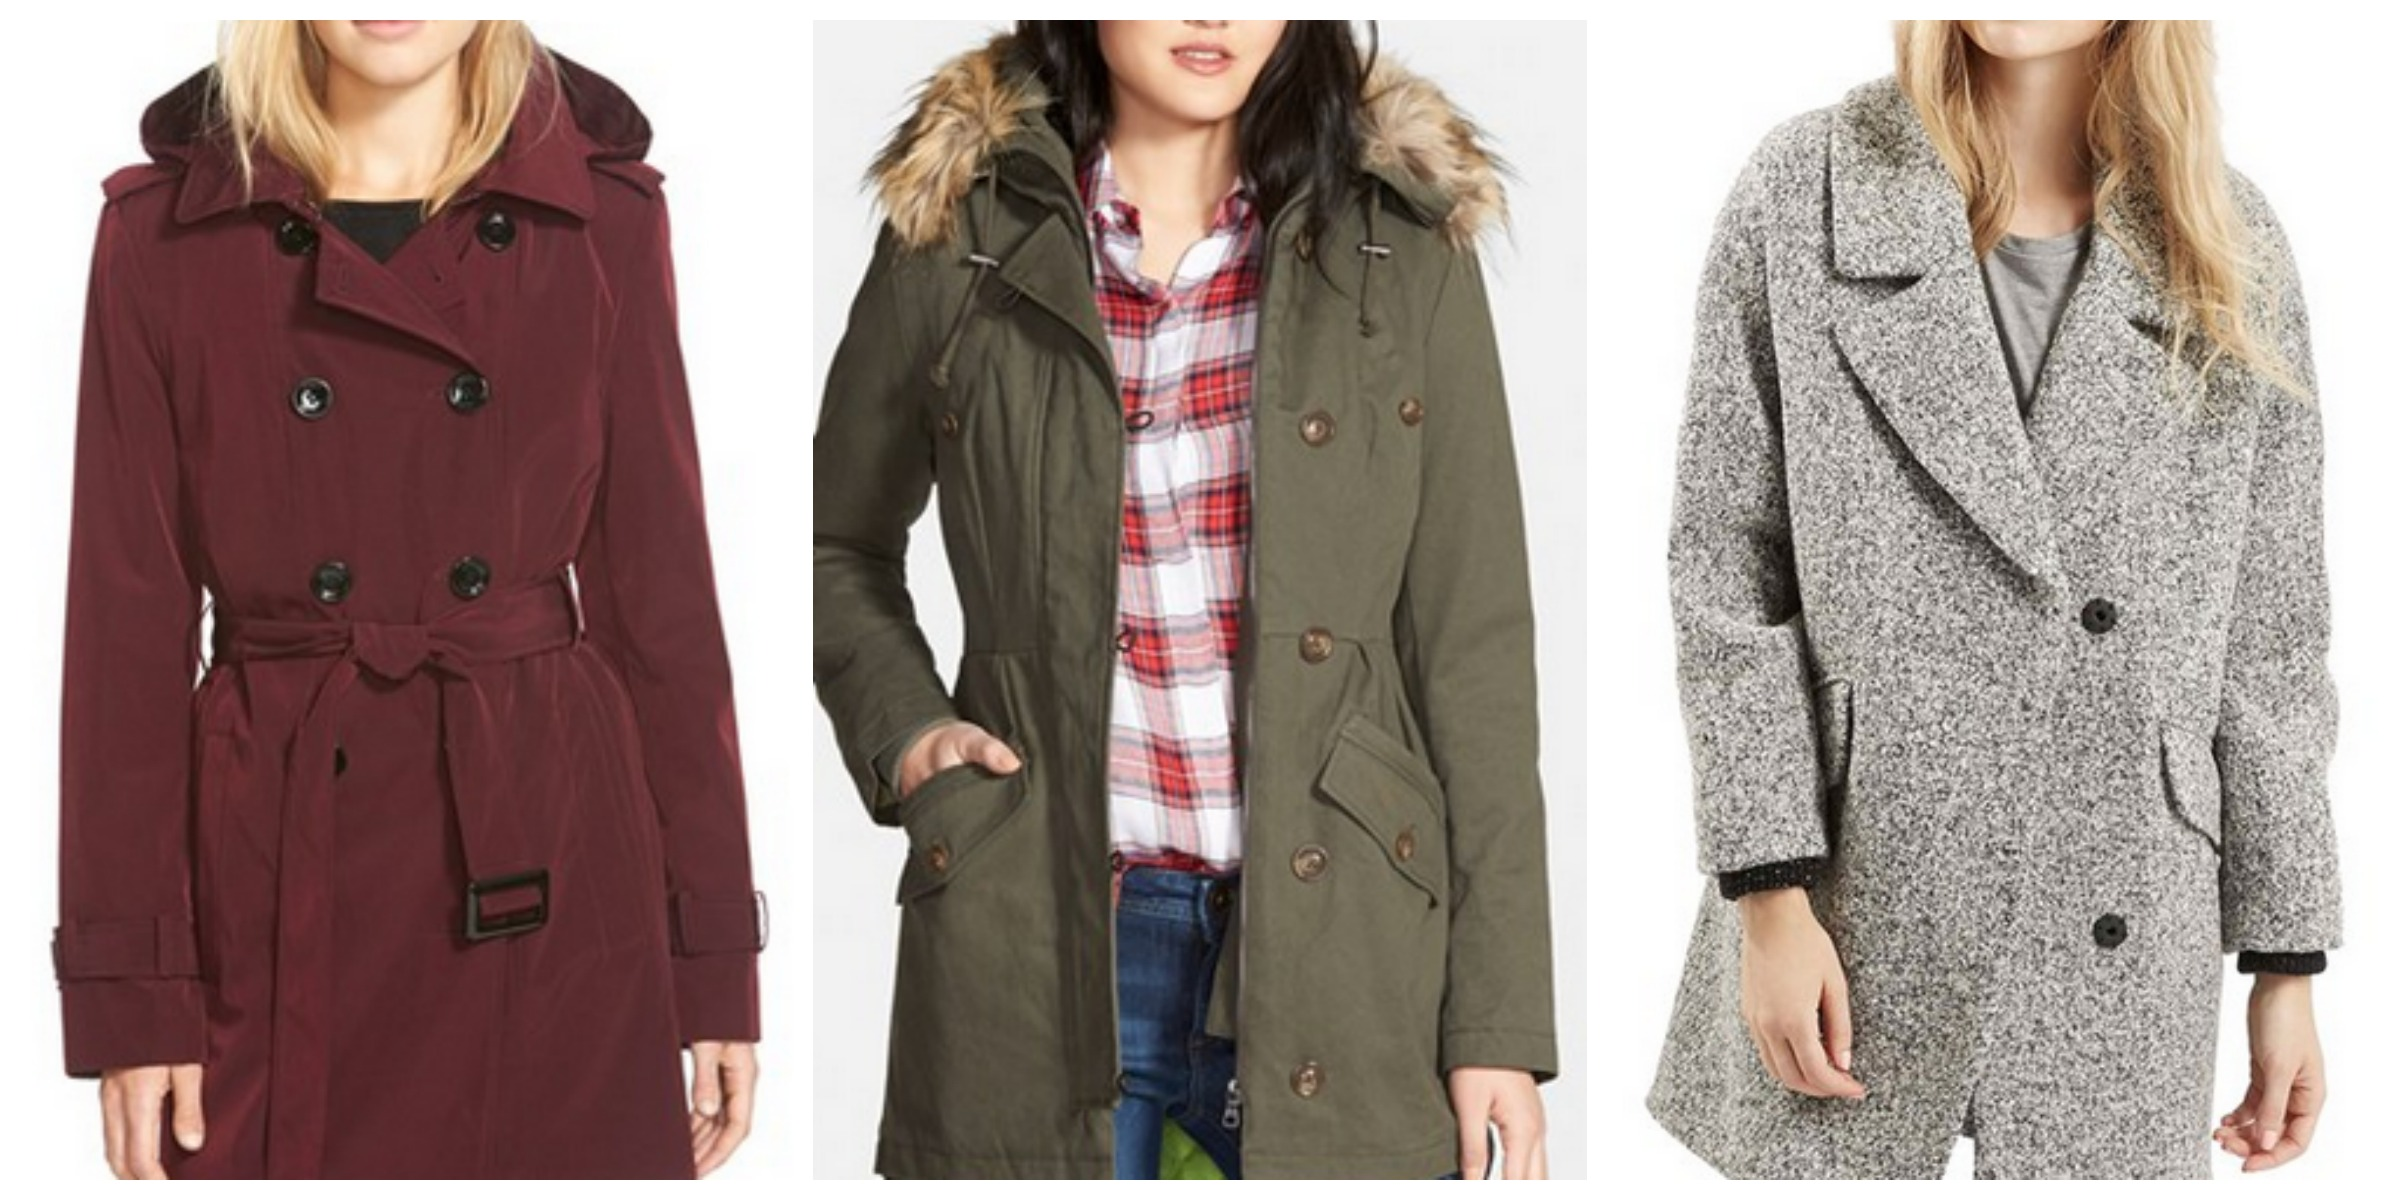 40 stylish winter jackets under $200 - AOL Lifestyle